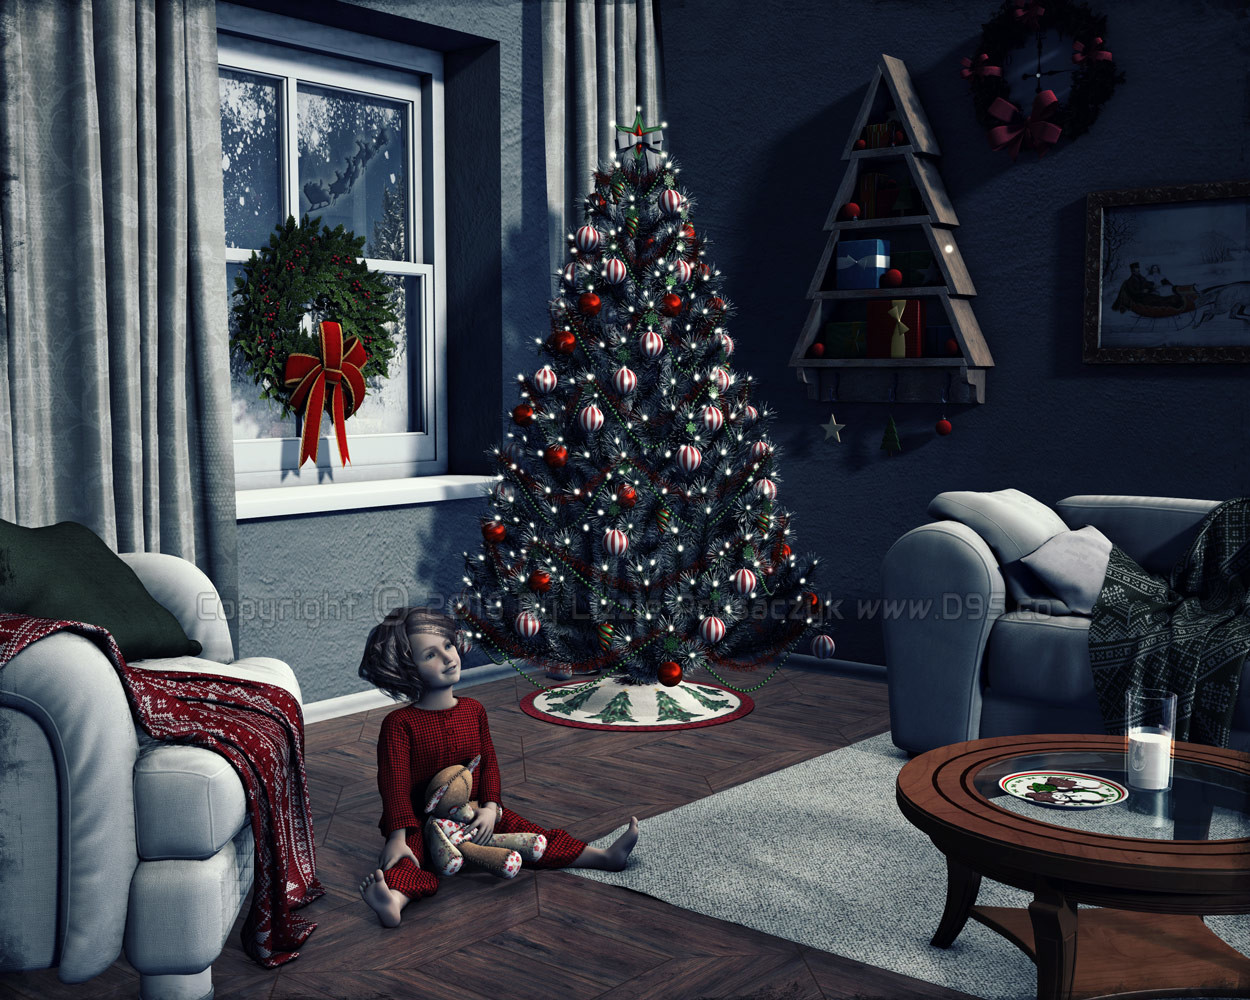 A young child waits for Santa to arrive with gifts for all.